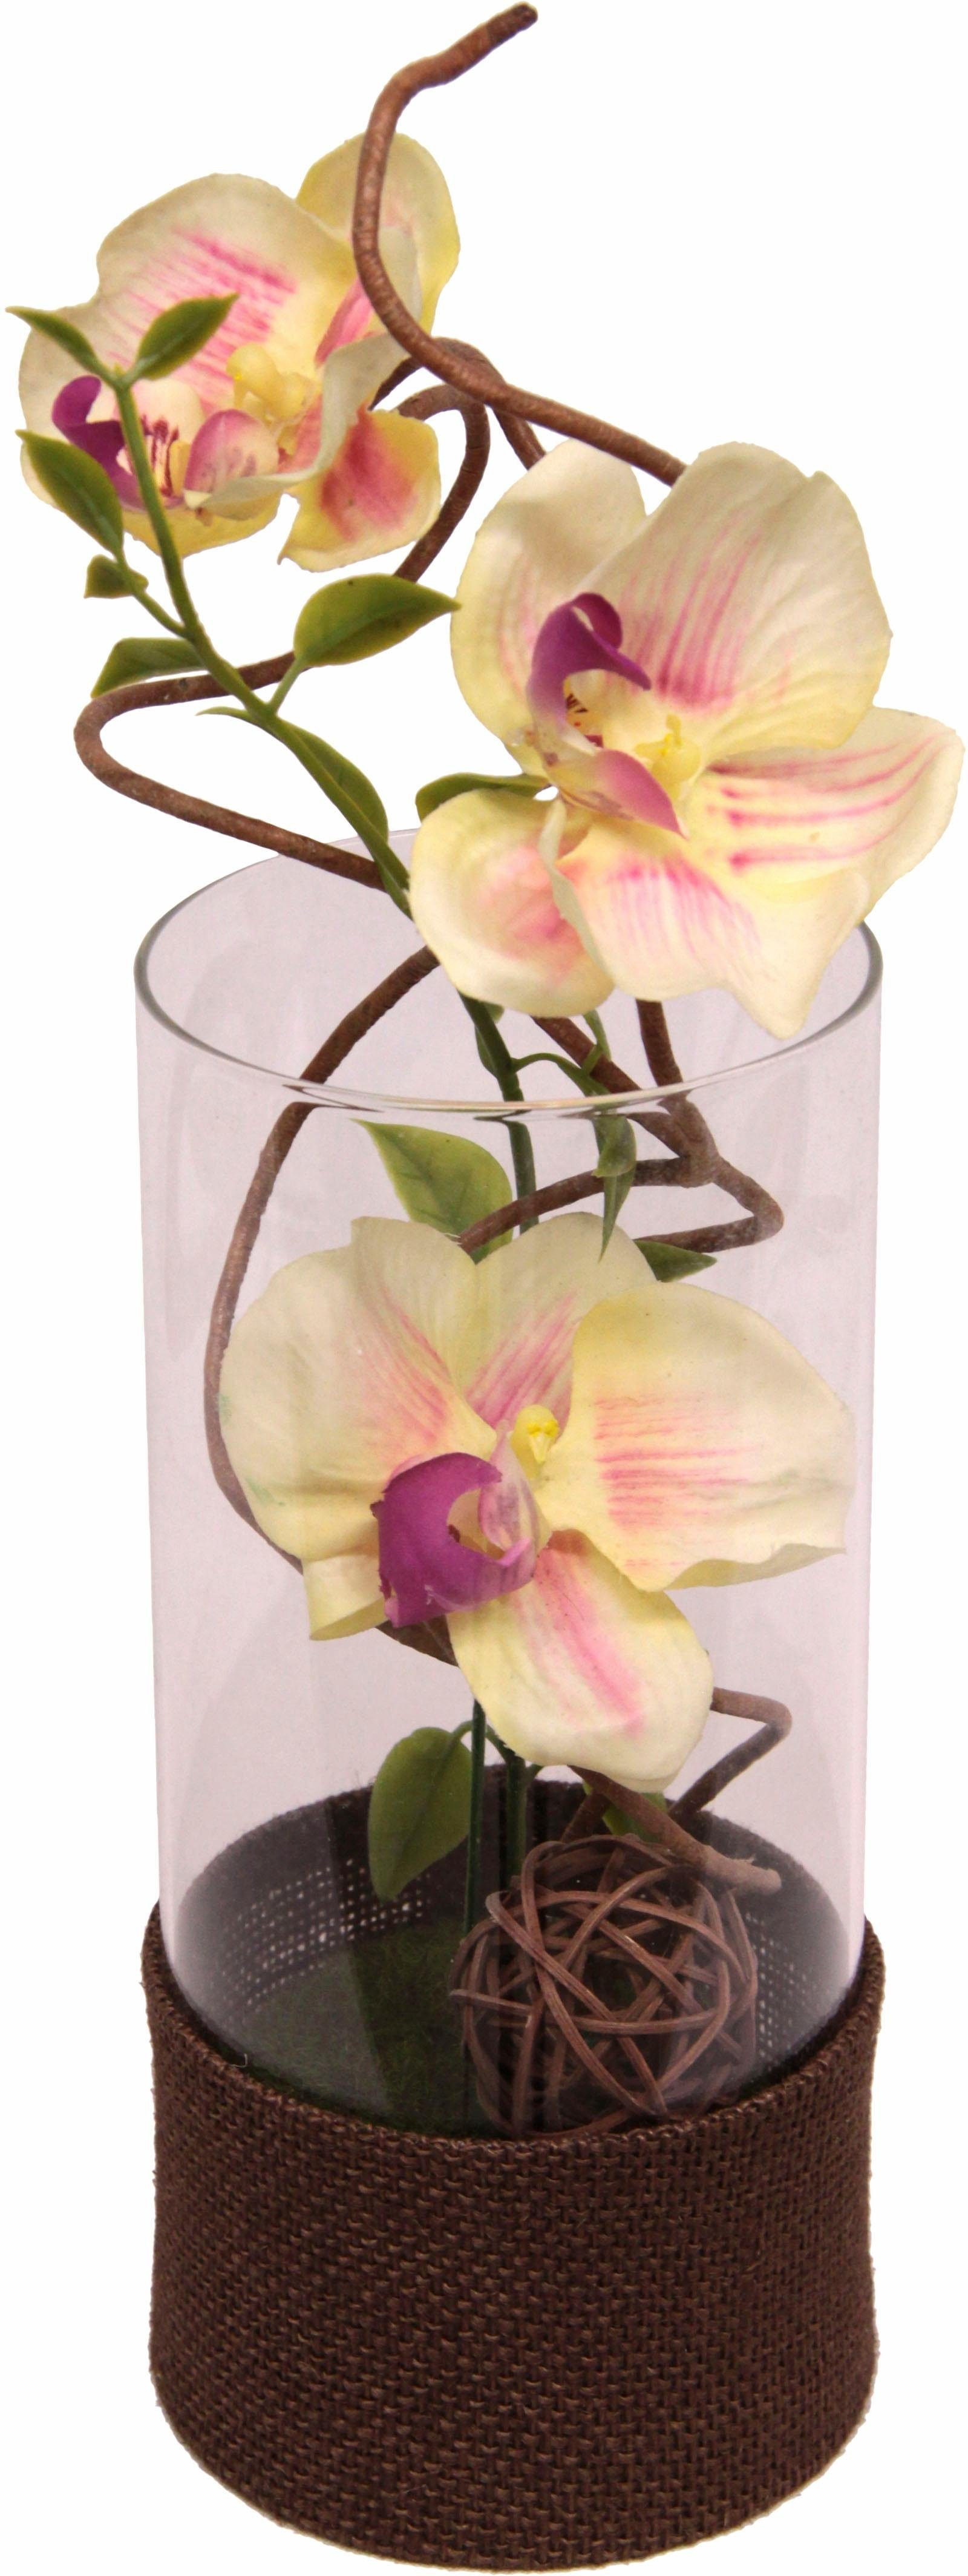 Home affaire Kunstblume »Orchidee« im Glas